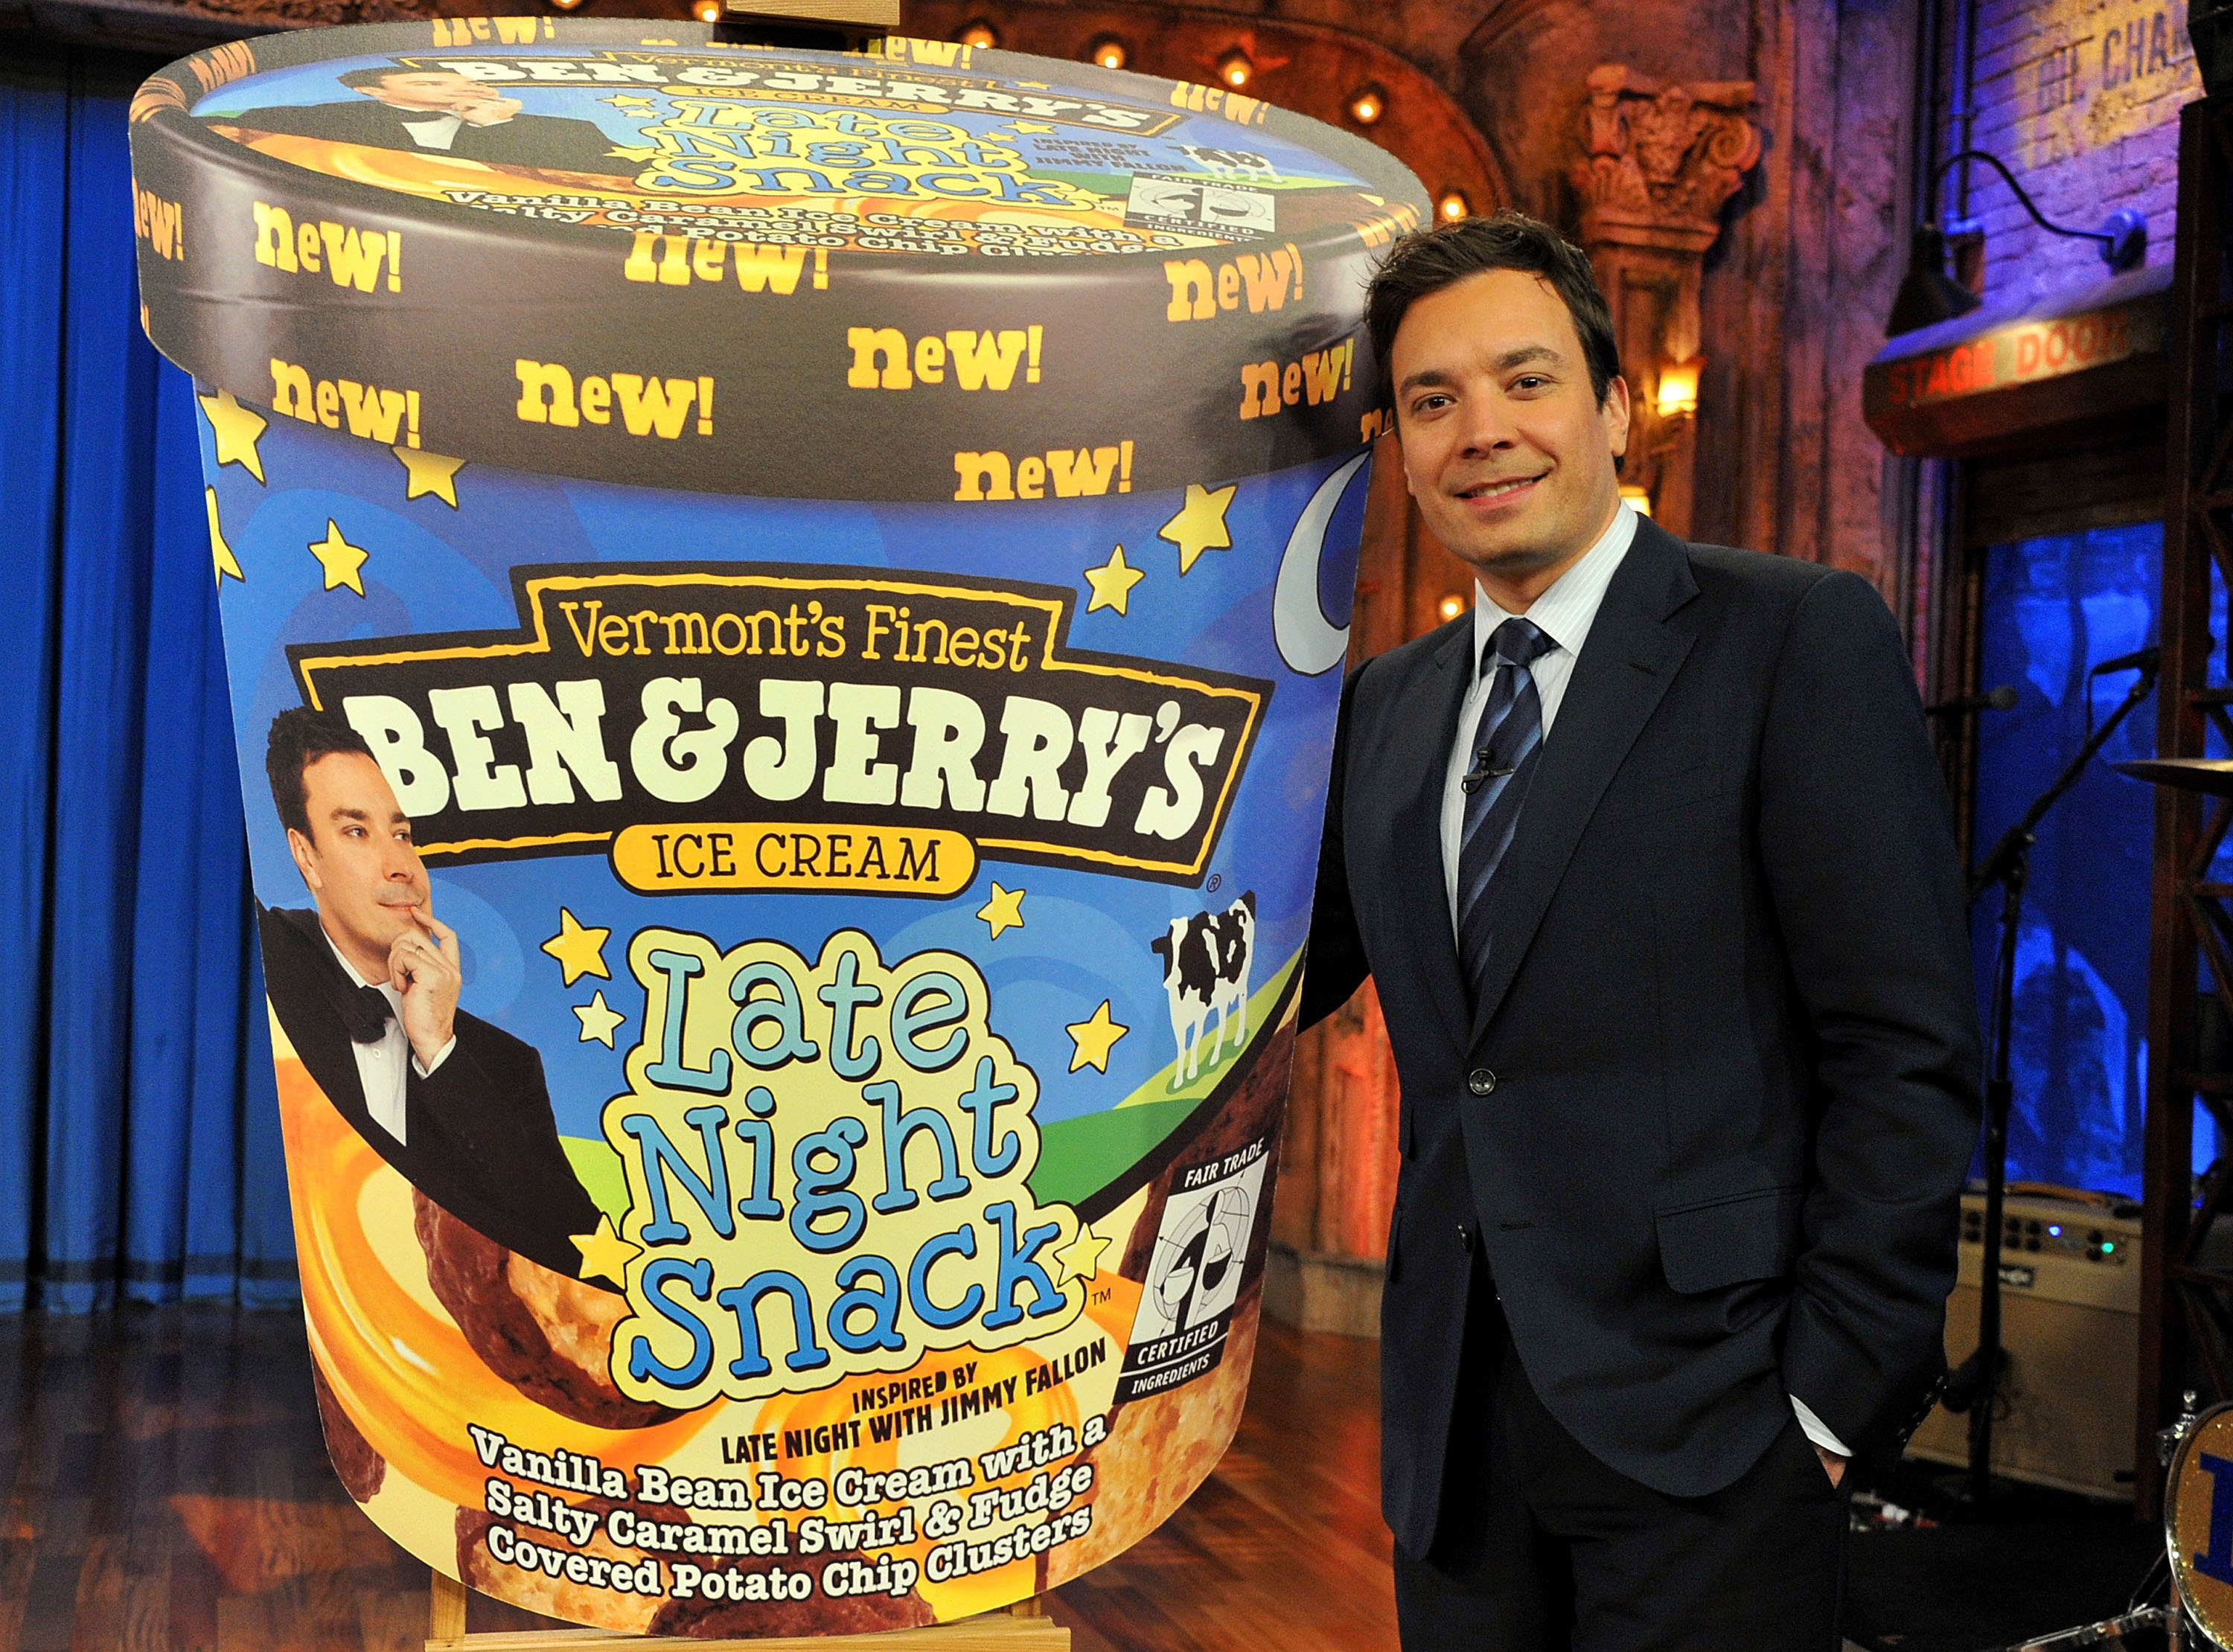 night sorry jimmy fallon ben late night snack ice cream ben jerrys ...